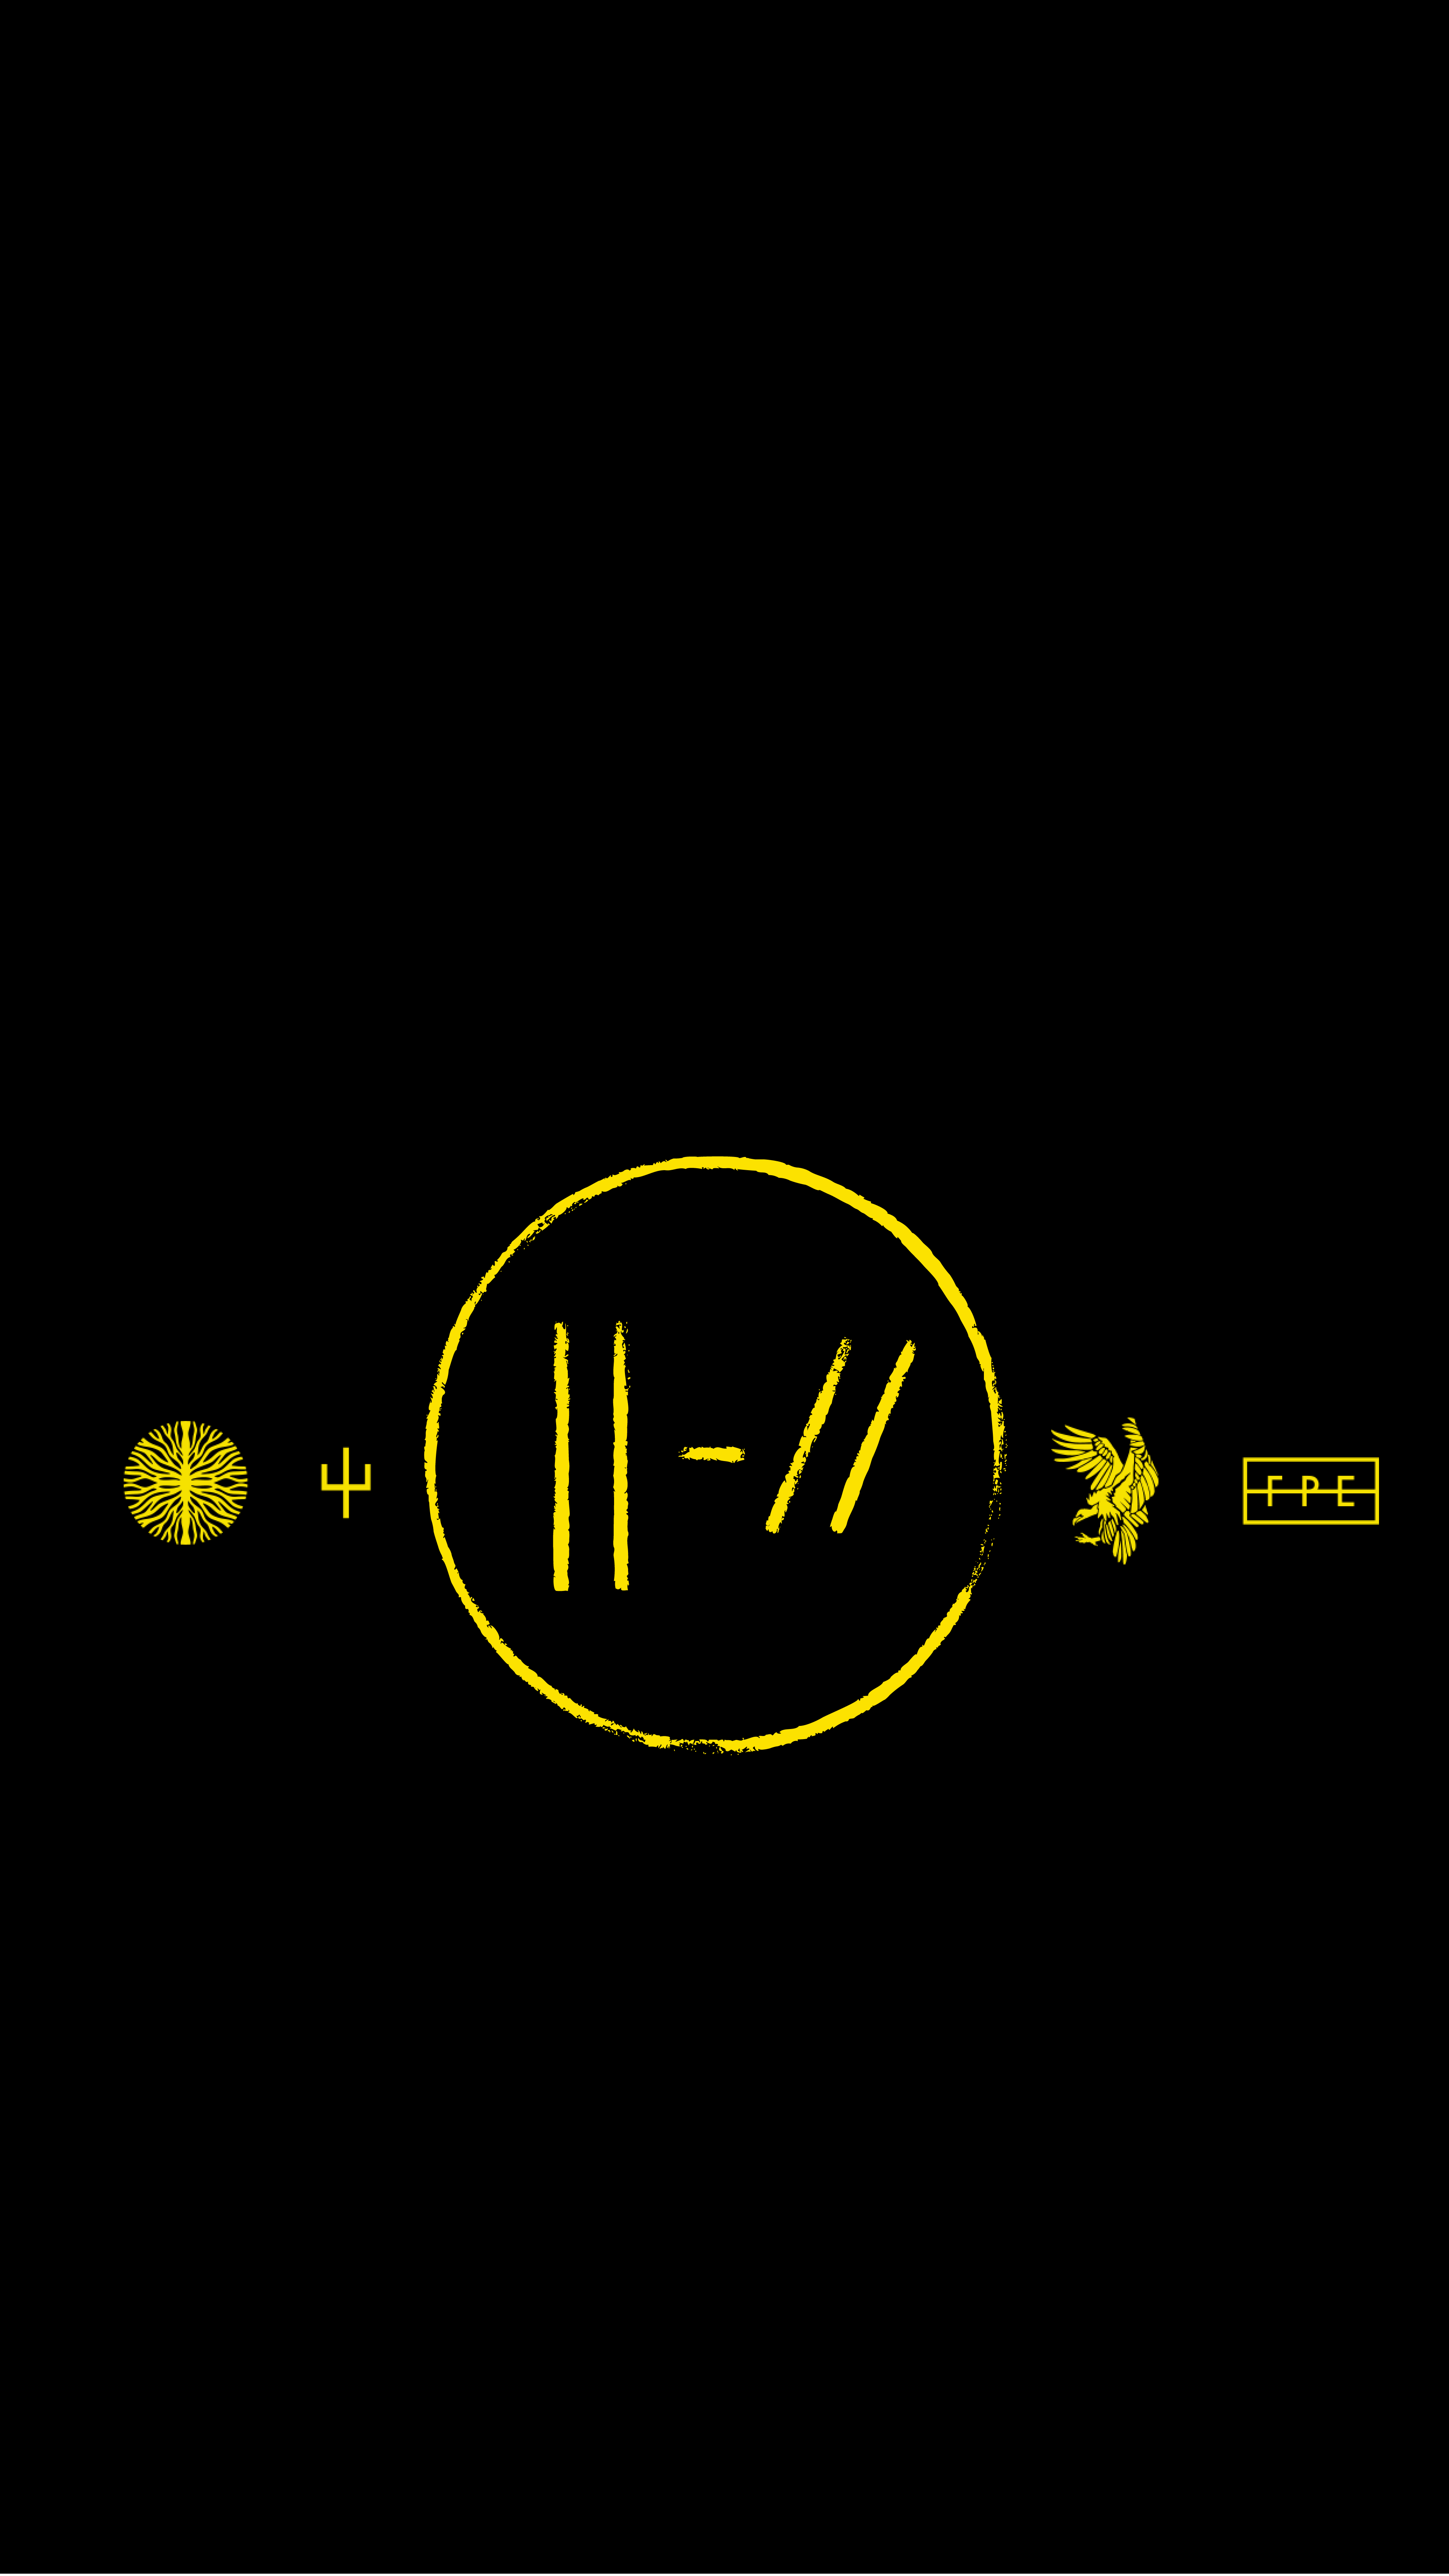 Twenty One Pilots Iphone Wallpapers Top Free Twenty One